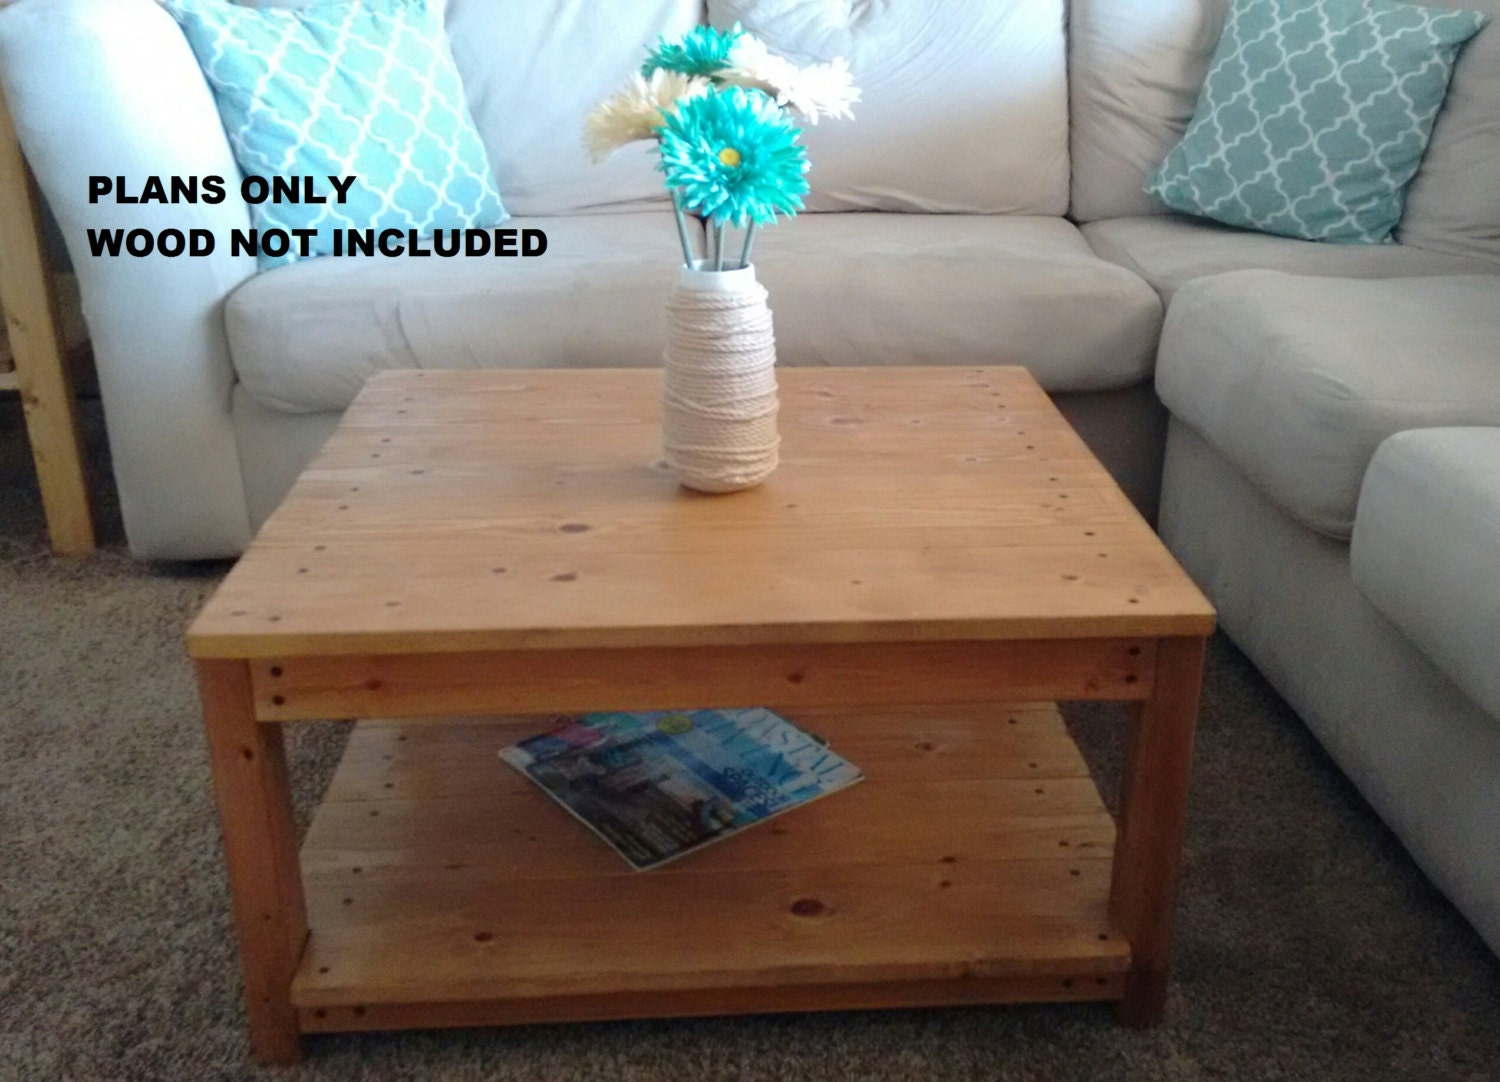 Diy plans to make square wooden coffee table for Square coffee table plans